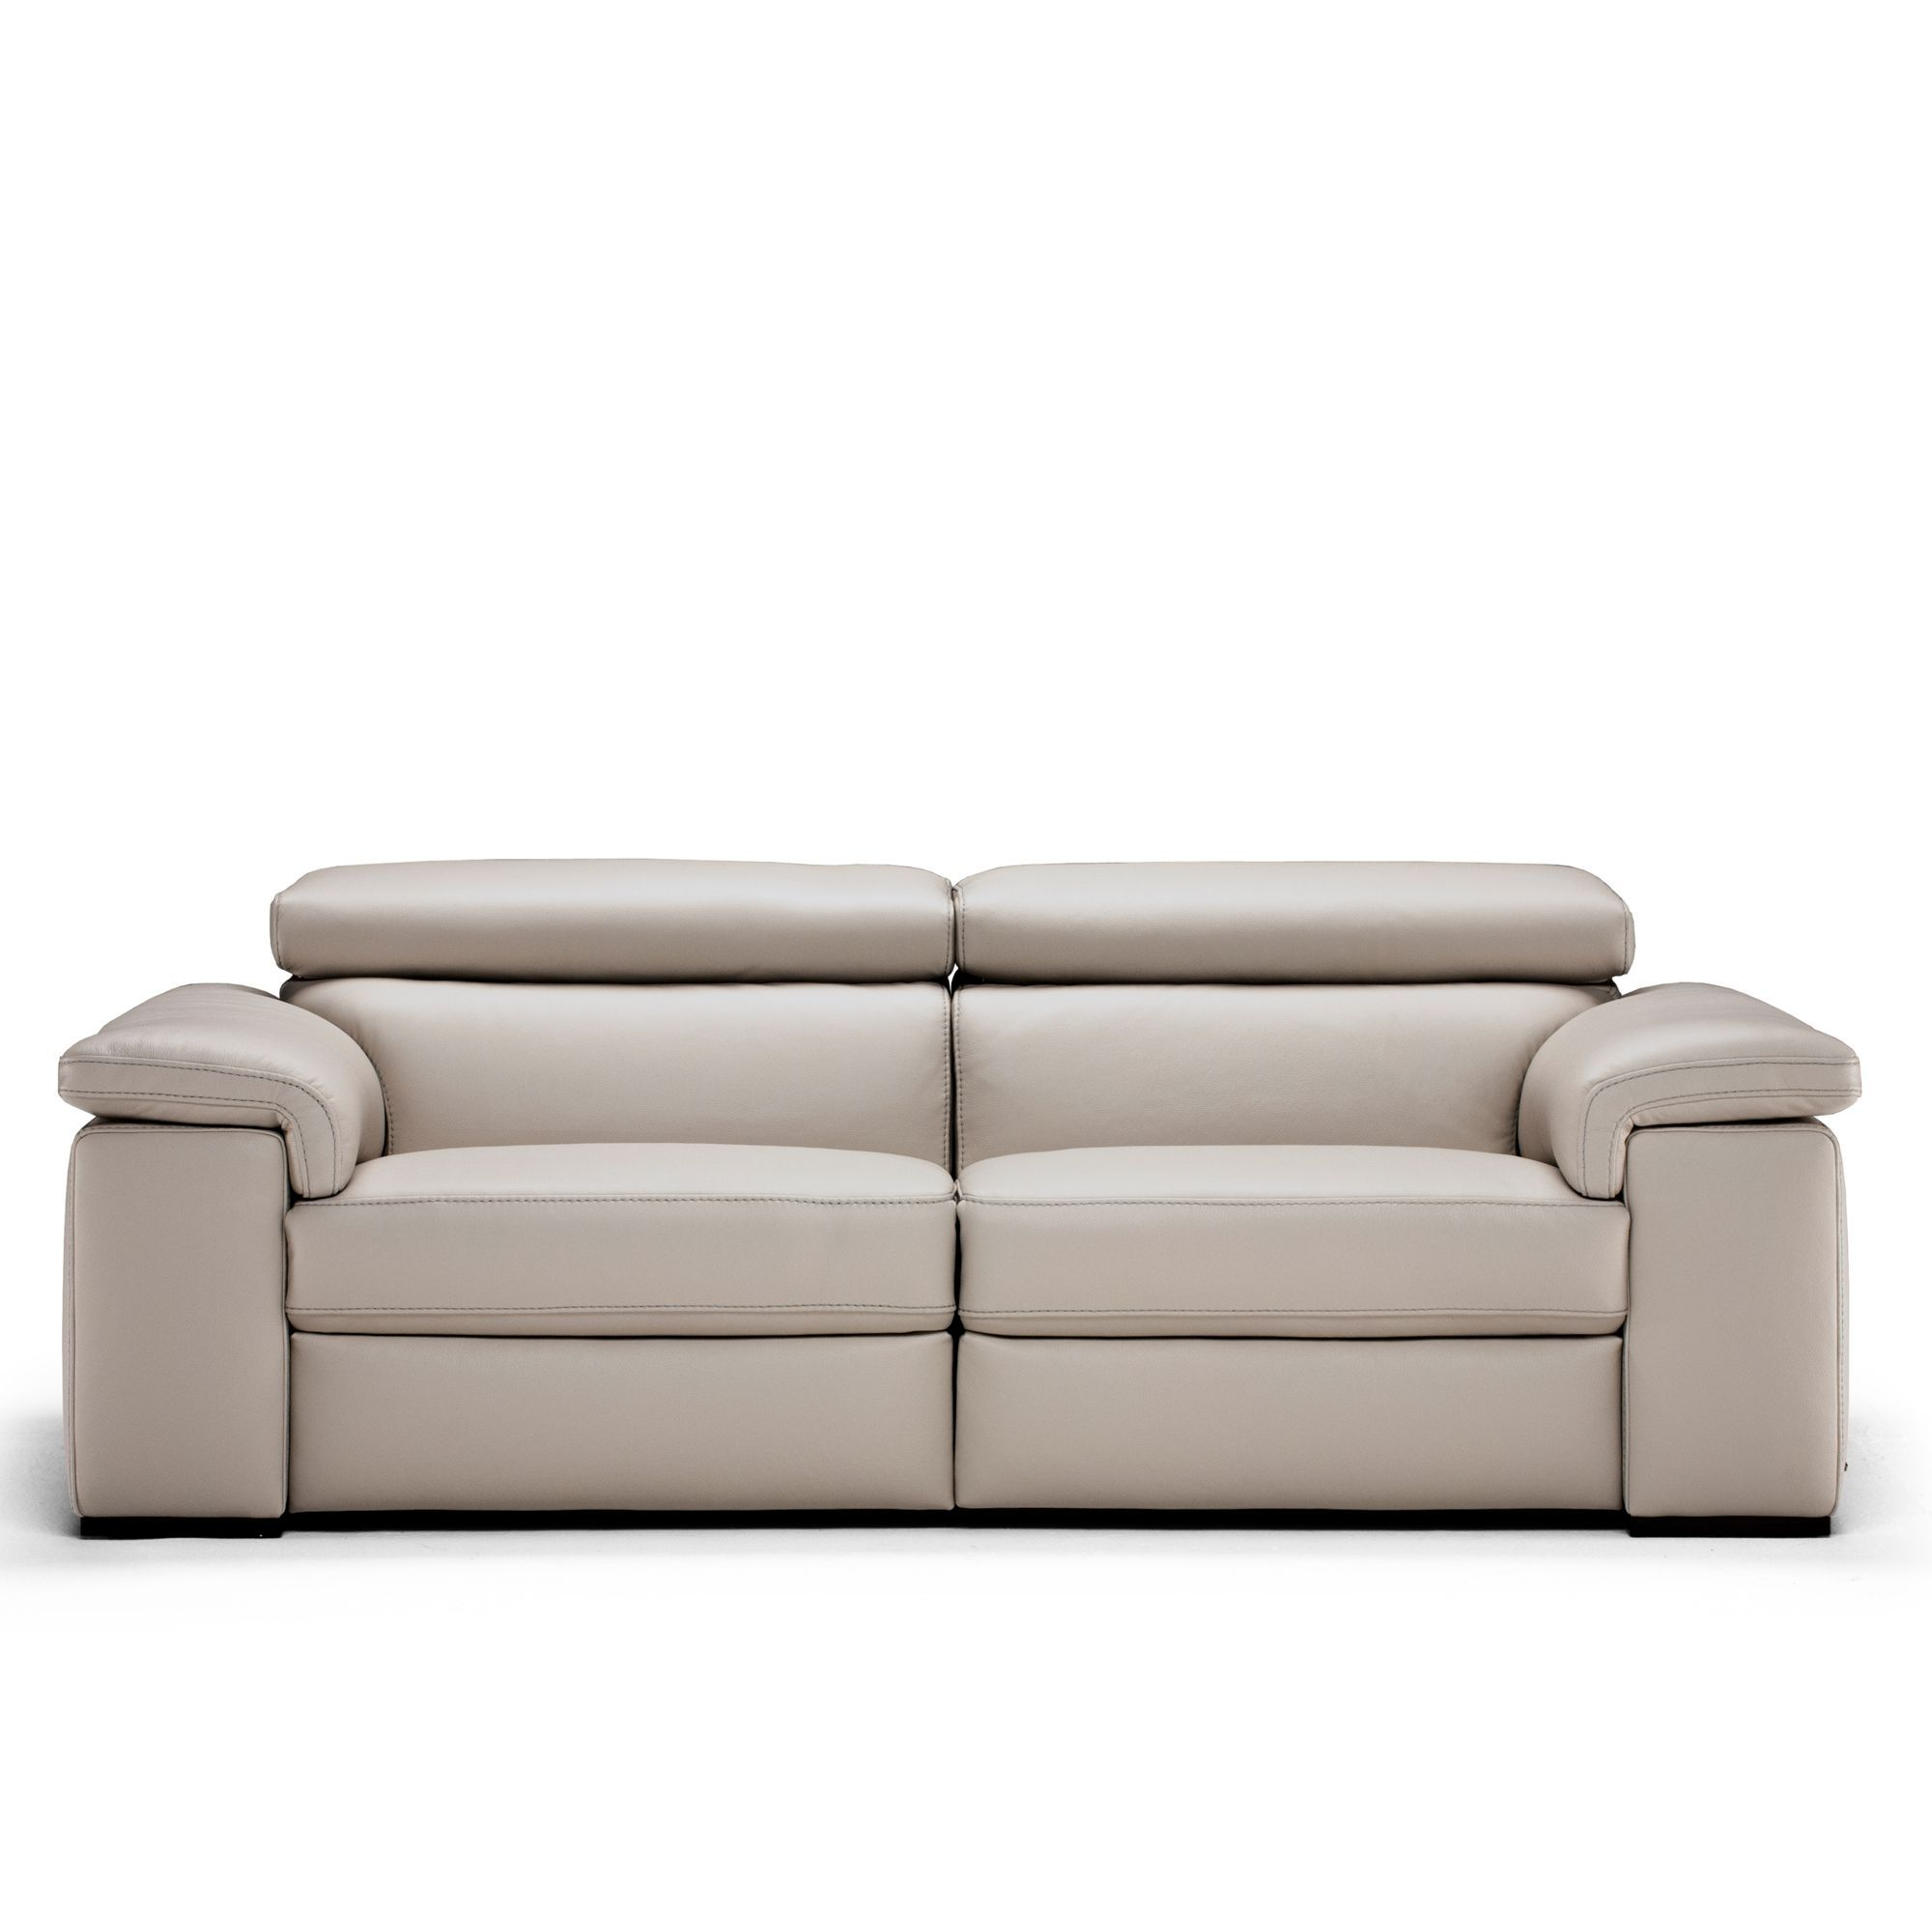 Sofa Bed Ebay Peterborough 25 Images Natuzzi Sectional Sofa Bed